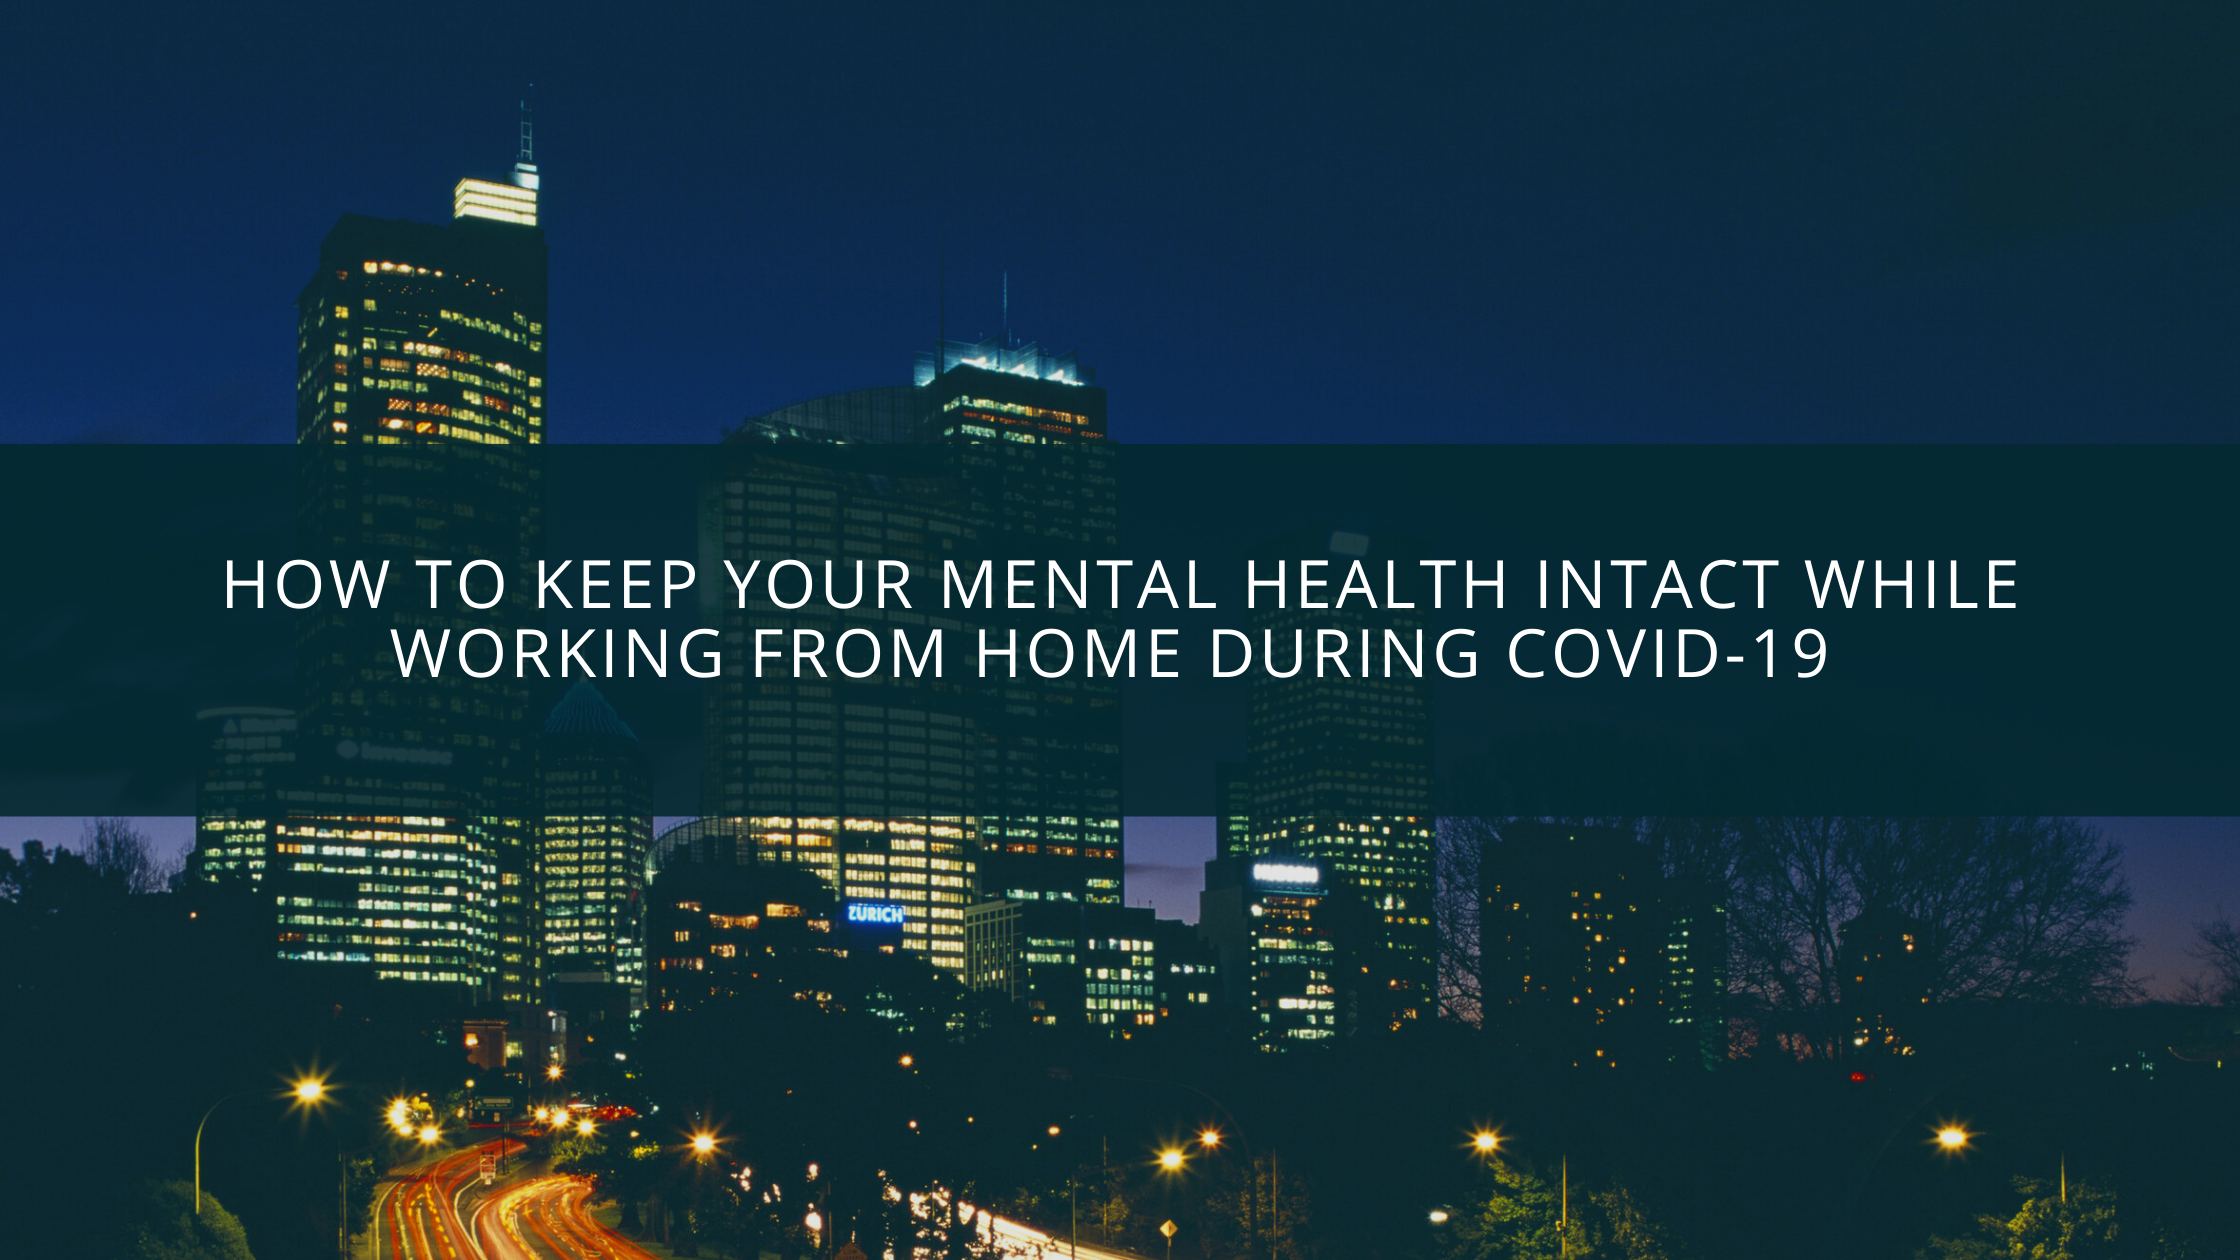 How to keep your mental health intact while working from home during COVID-19